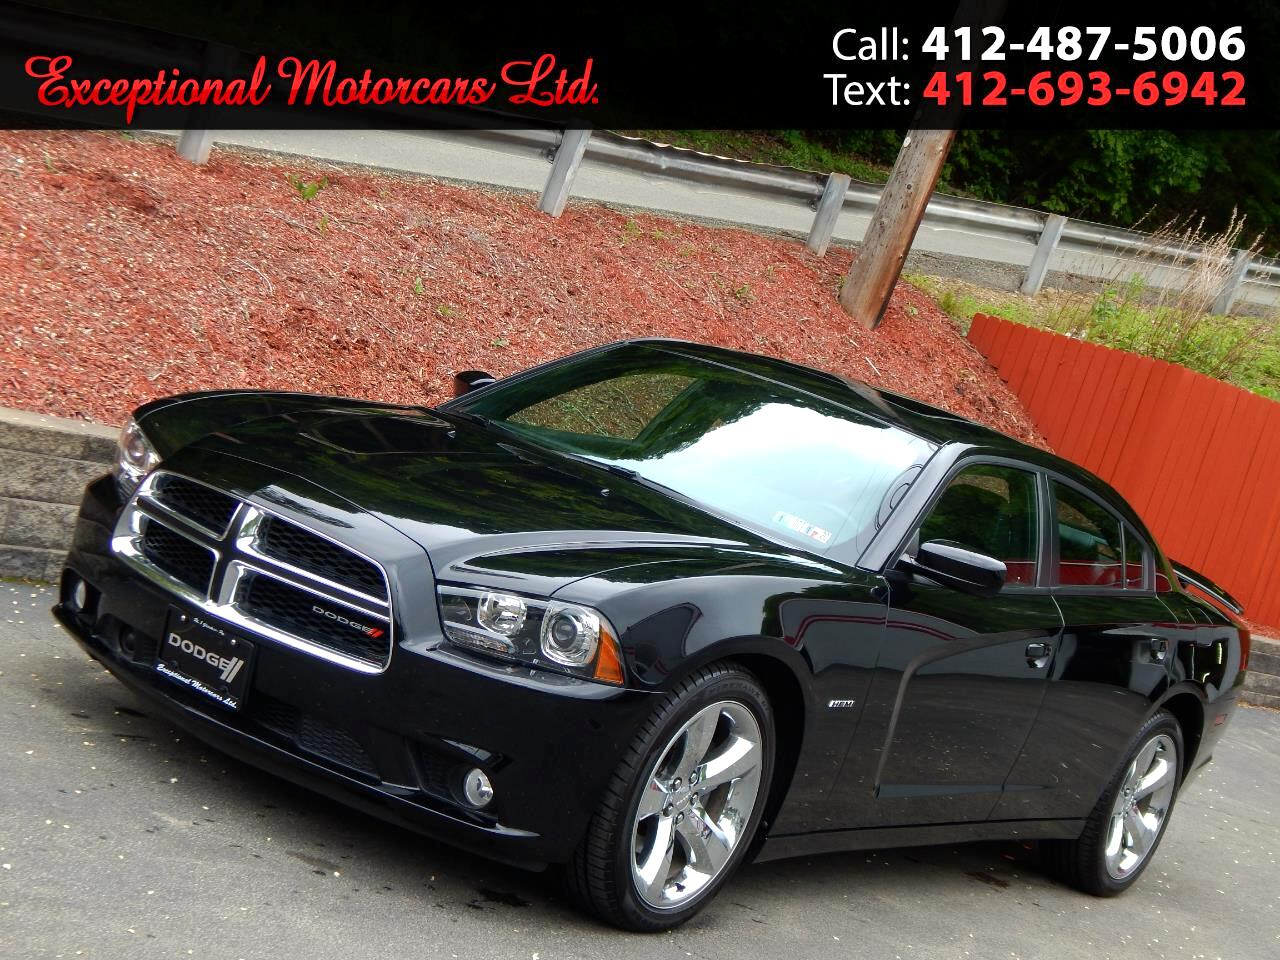 2014 Dodge Charger 4dr Sdn RT Max RWD